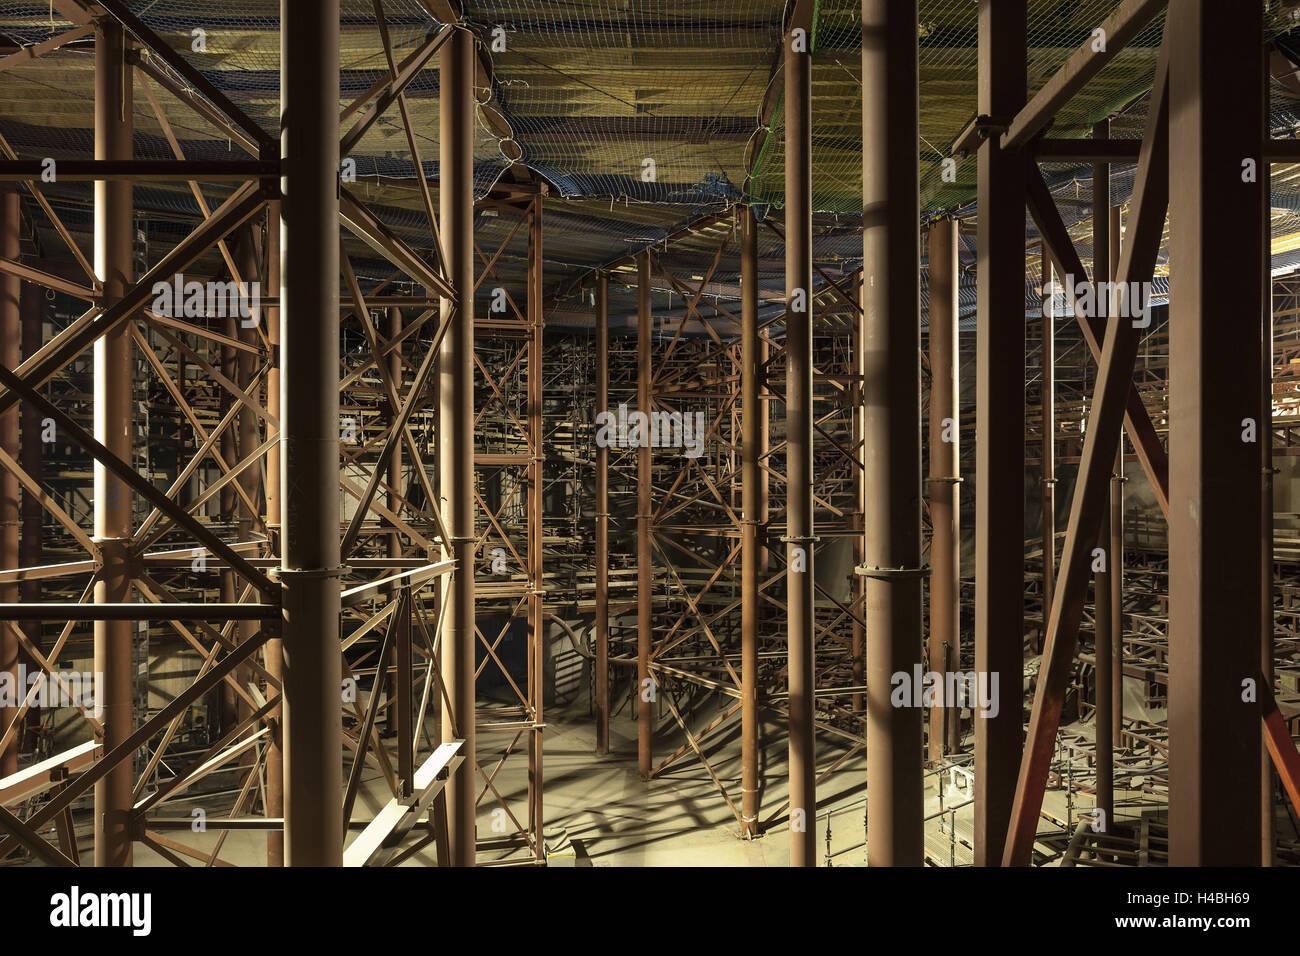 Scaffolding Props Stock Photos Scaffolding Props Stock Images Alamy